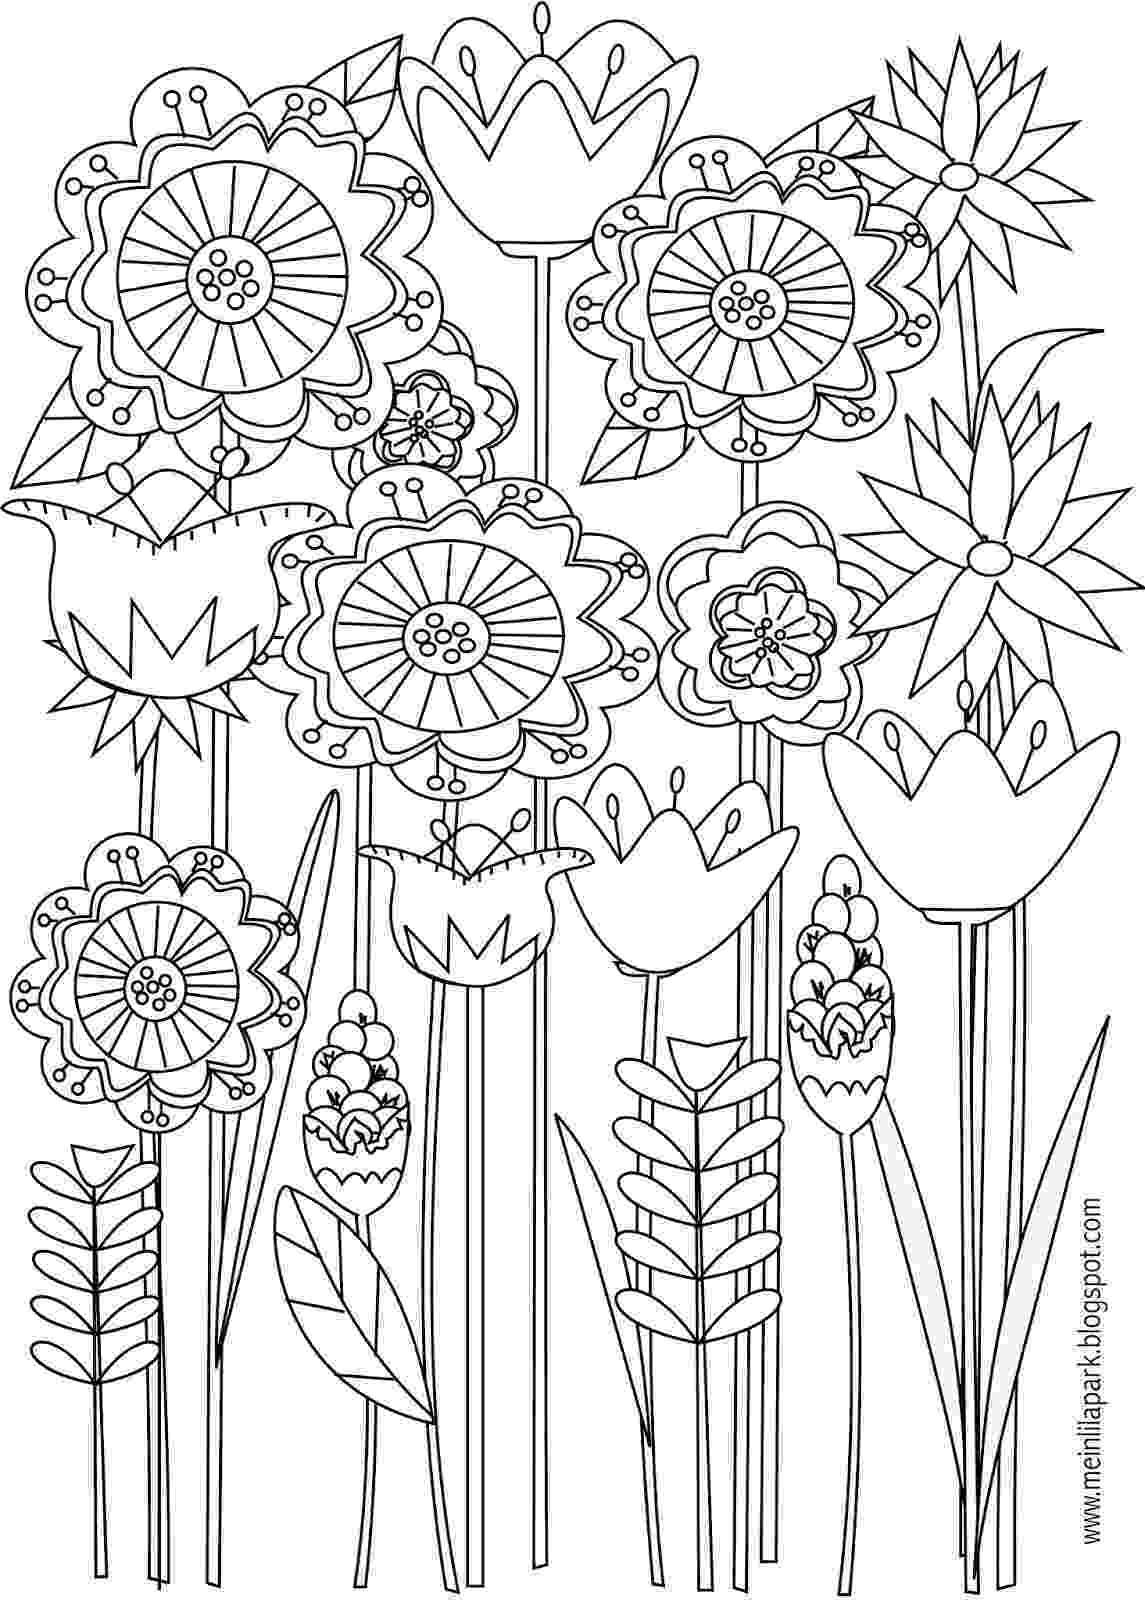 free printable spring flower coloring pages sweet and sunny spring easter coloring pages printable spring flower free coloring pages